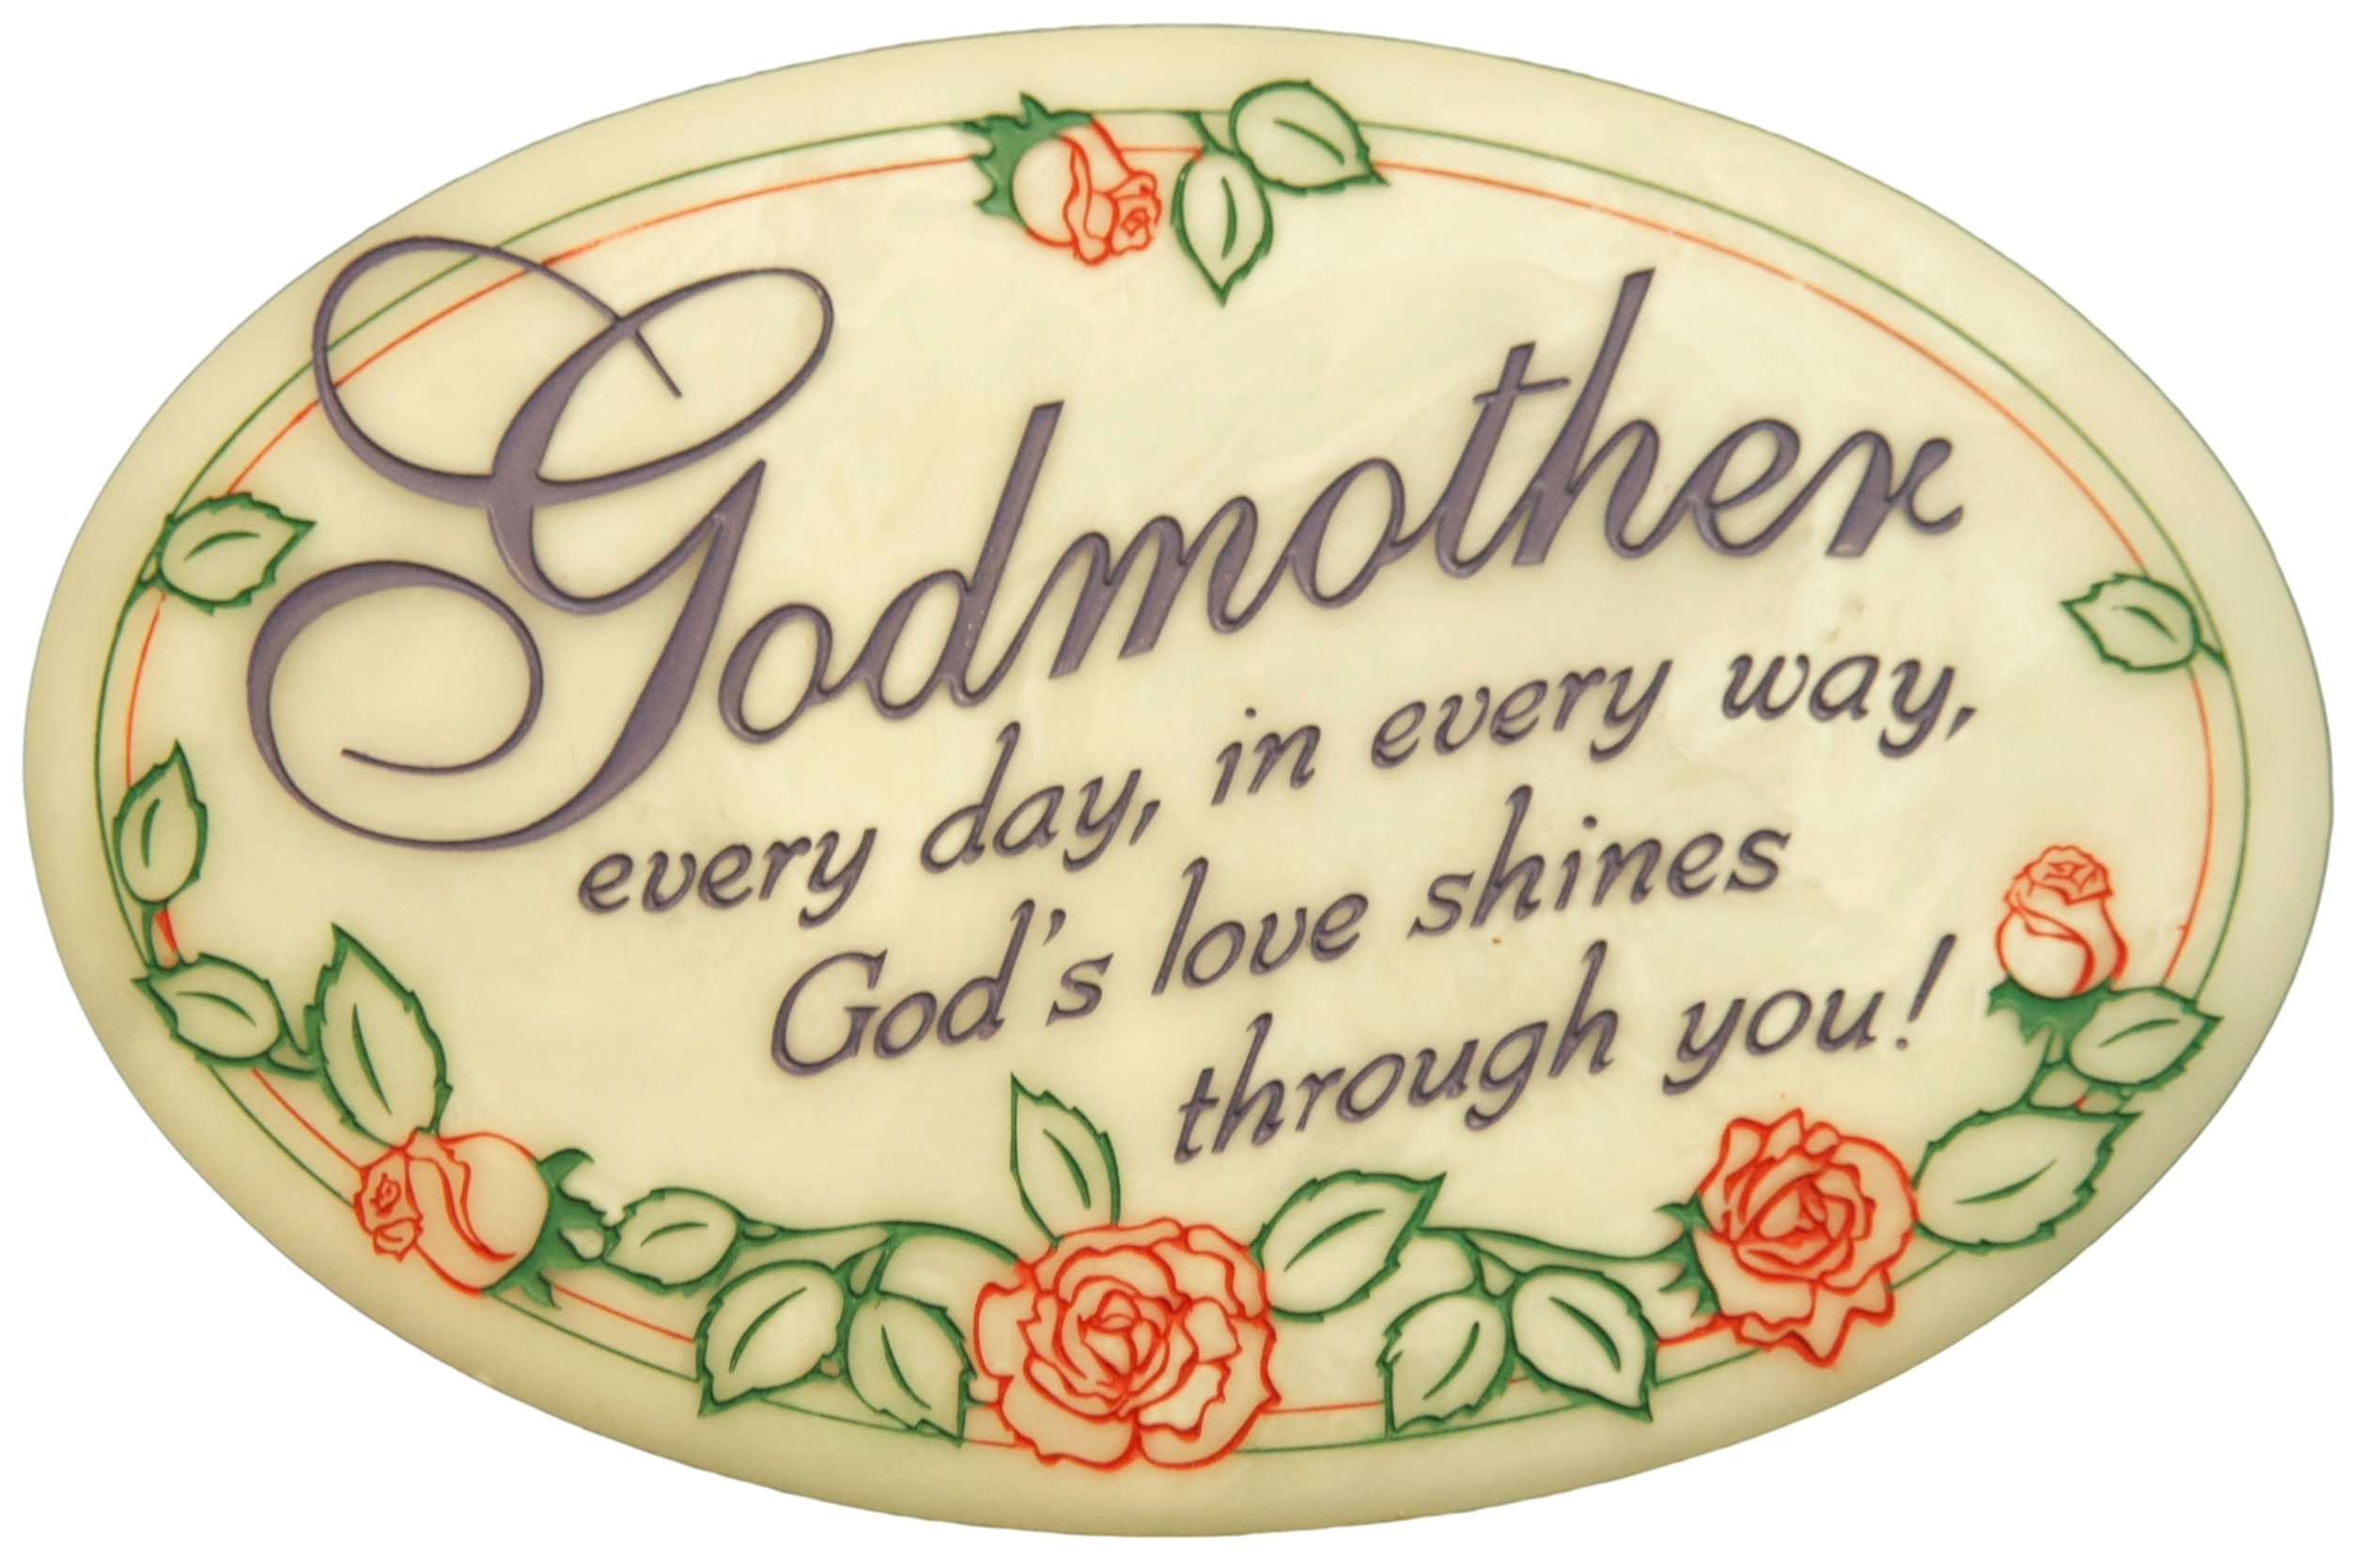 Godmother Every Day, in Every Way, God's Love Shines Through You! Decorative Plaque